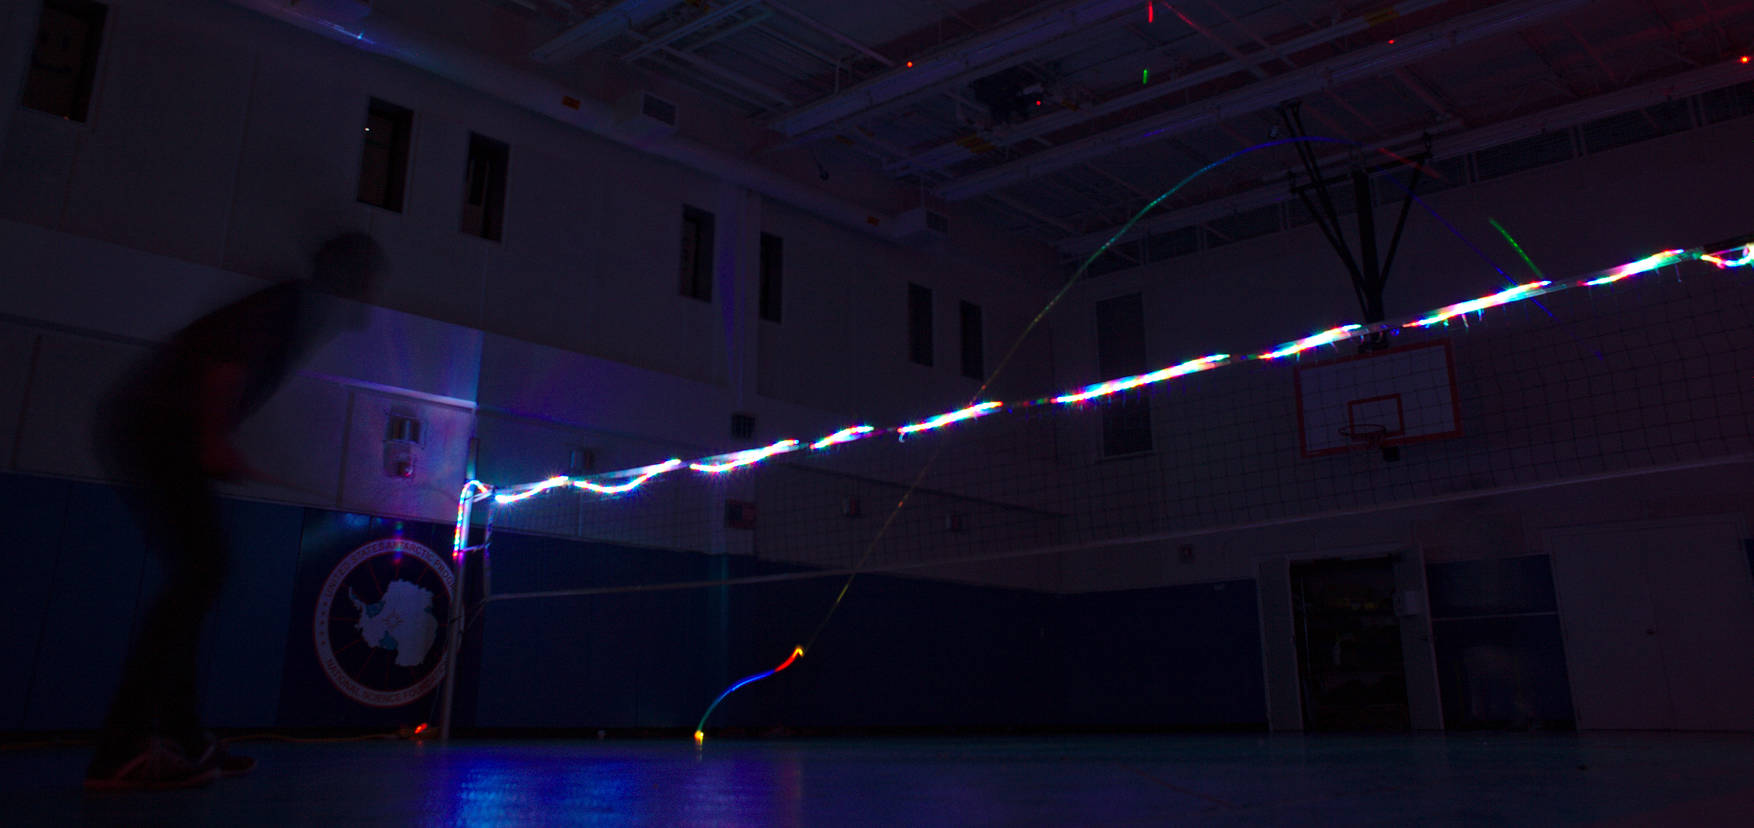 LED badminton in the dark